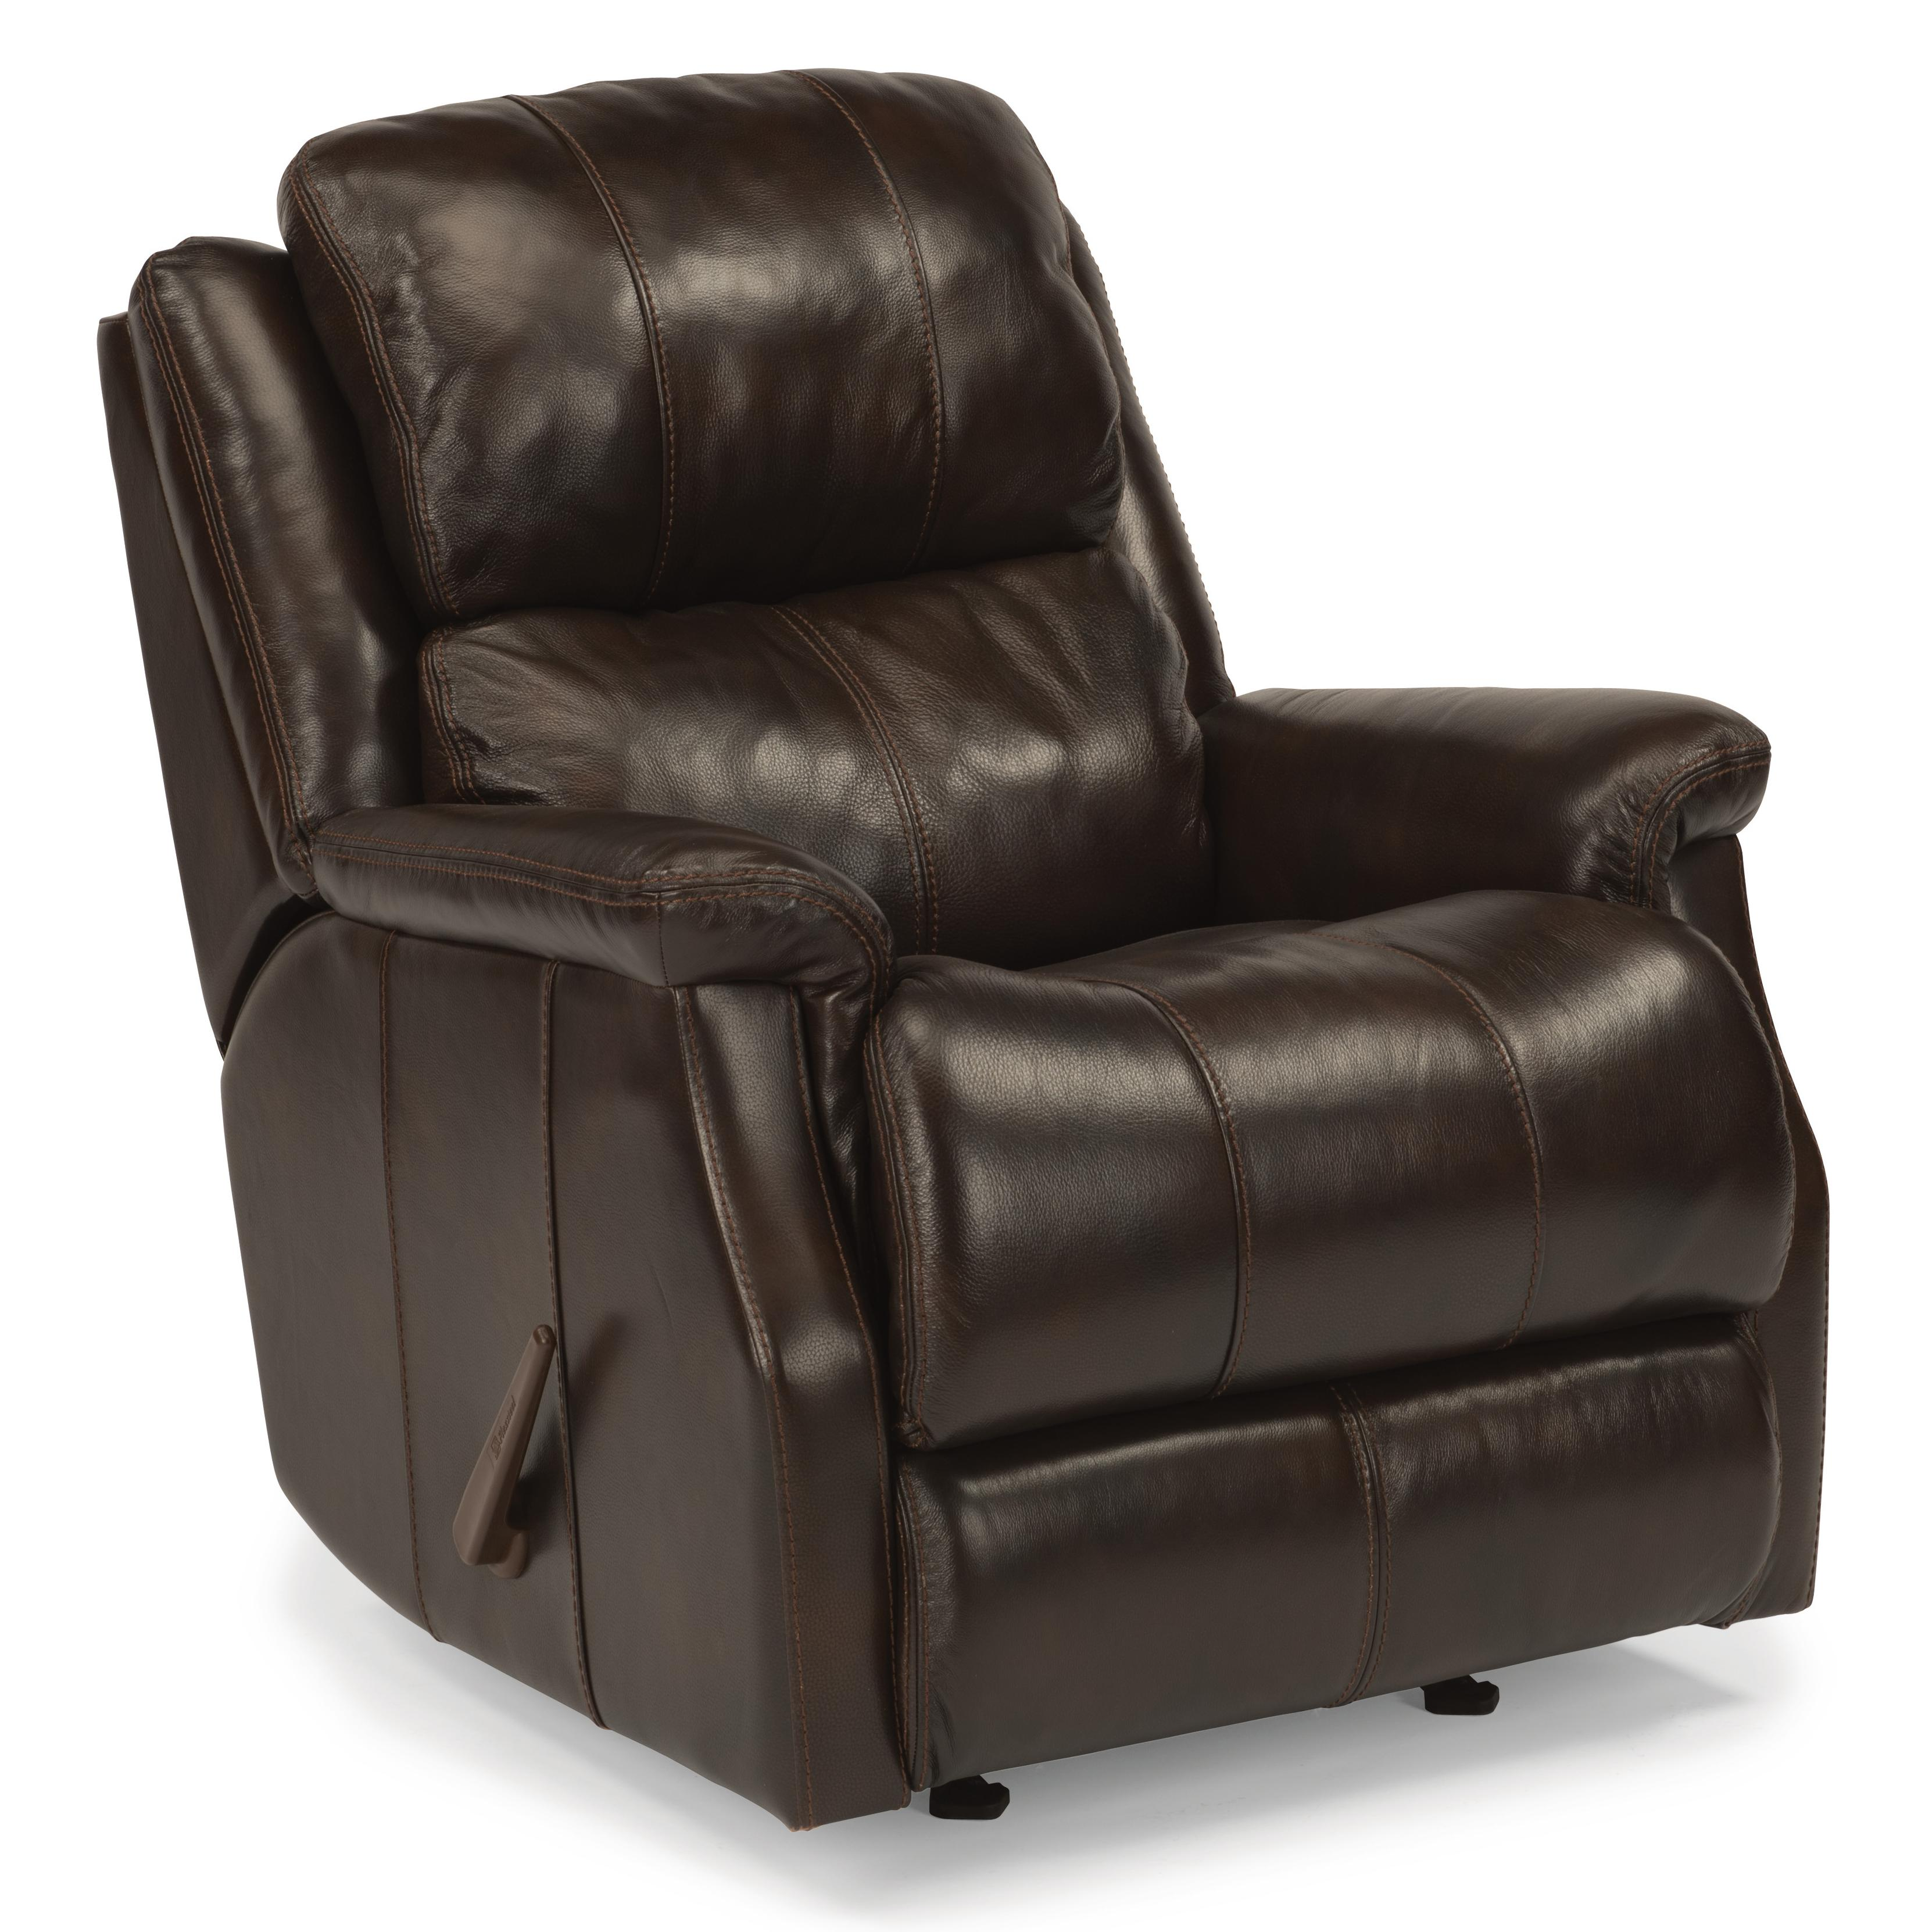 Phenomenal Latitudes Mateo Casual Rocker Recliner By Flexsteel At Efo Furniture Outlet Dailytribune Chair Design For Home Dailytribuneorg